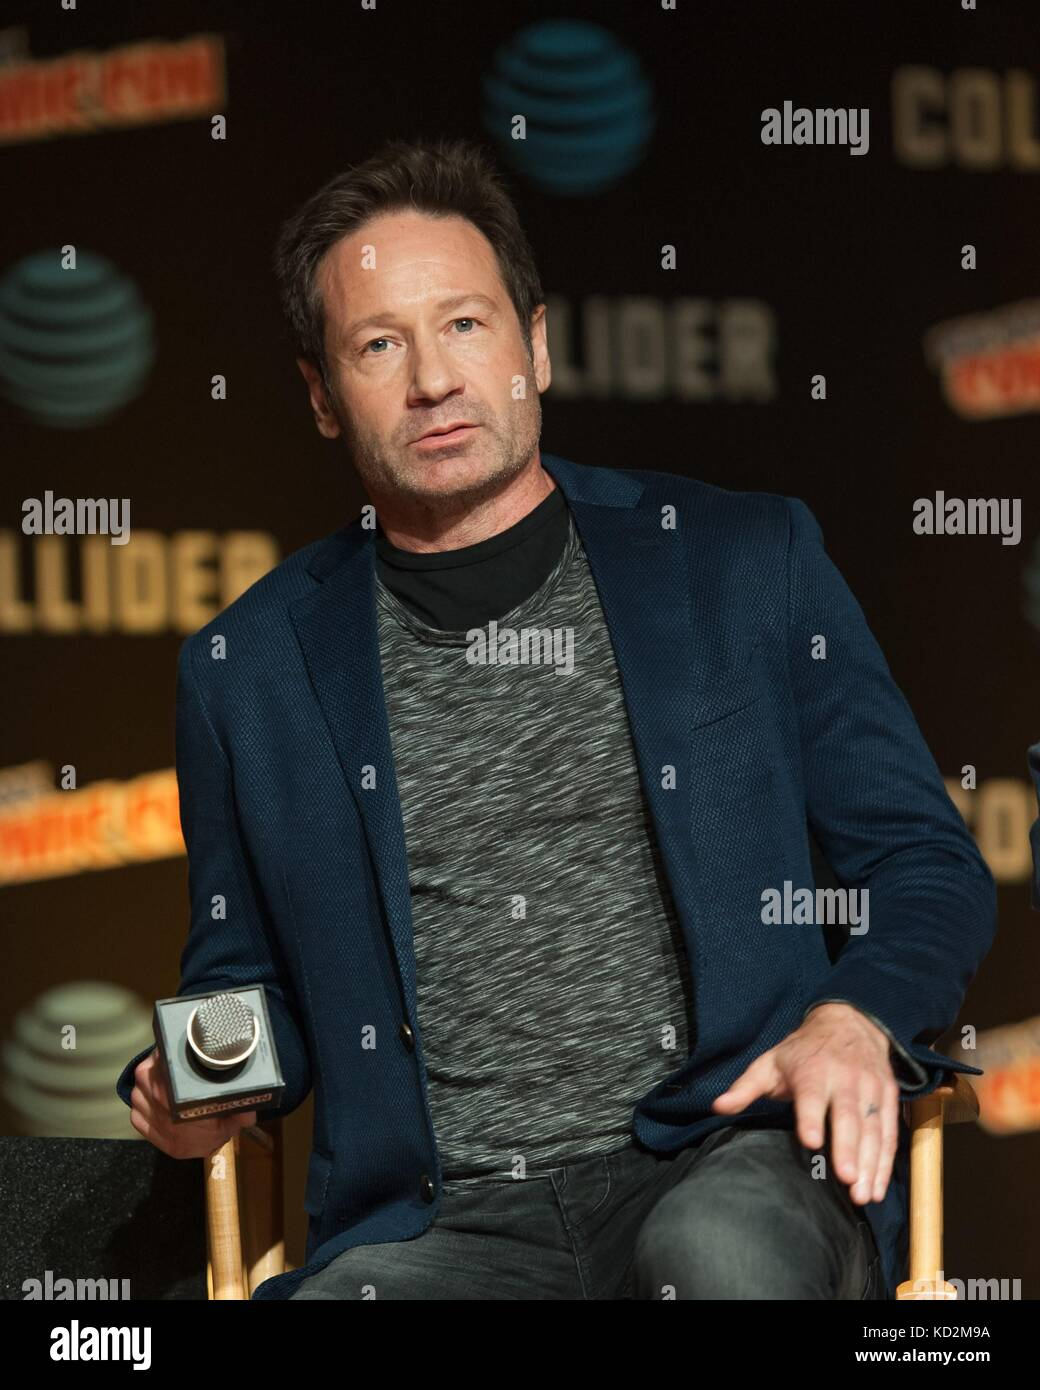 New York, NY, USA. 8th Oct, 2017. David Duchovny, attending The X Files event in attendance for New York Comic Con - Stock Image